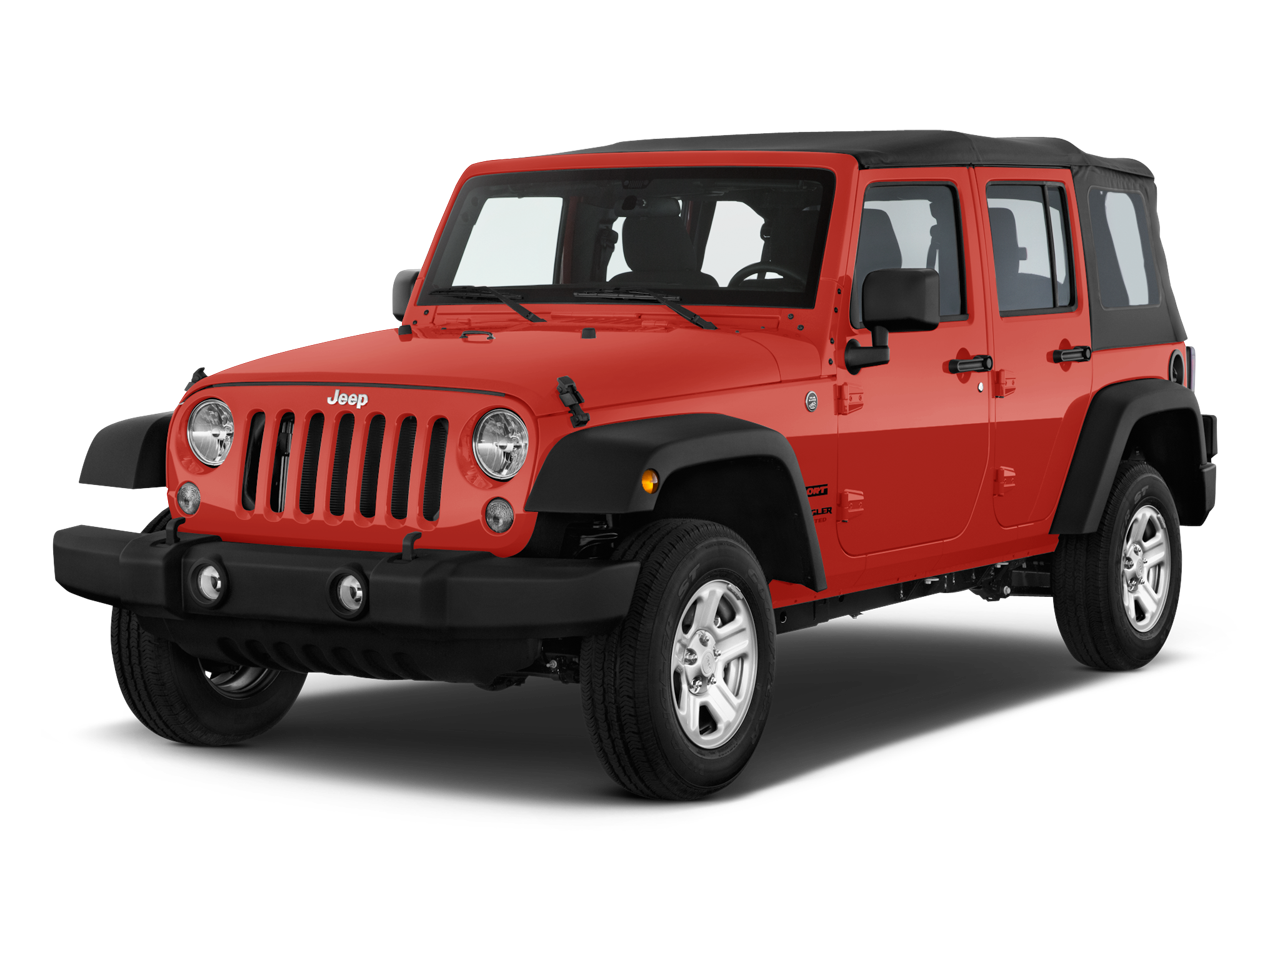 new wrangler unlimited for  in oklahoma city, ok - david